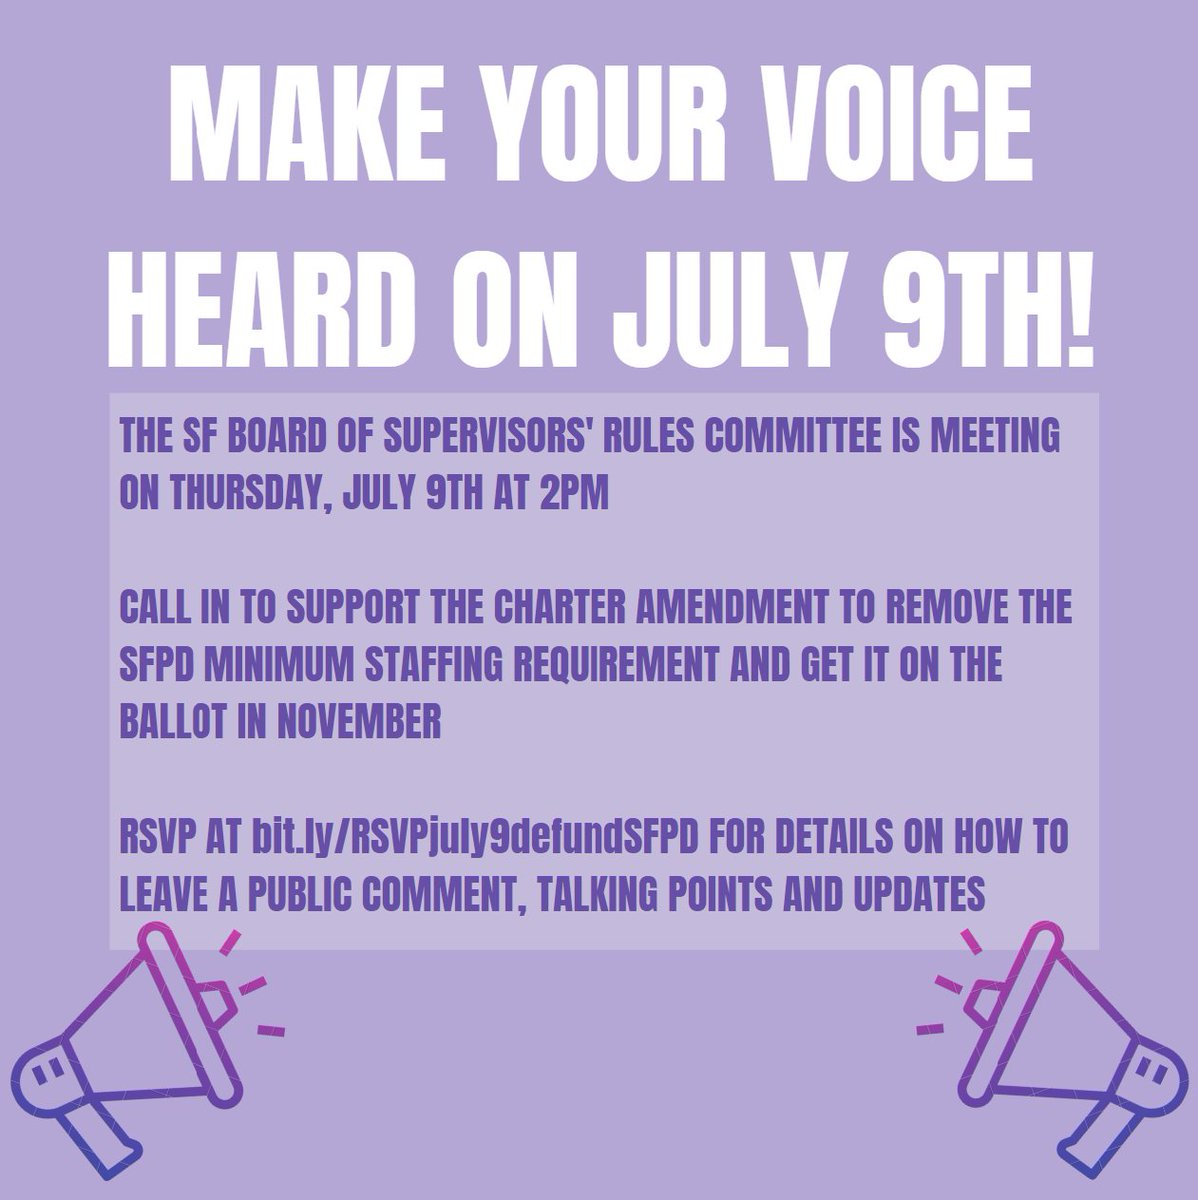 Defundsfpdnow Di Twitter Alert Schedule Change Two Public Comments Next Week Rsvp Now Talking Points Linked On Fbook July 8 About Sfpd Budget Https T Co 4kublatv7h July 9 About Sfpd Staffing Moved From July